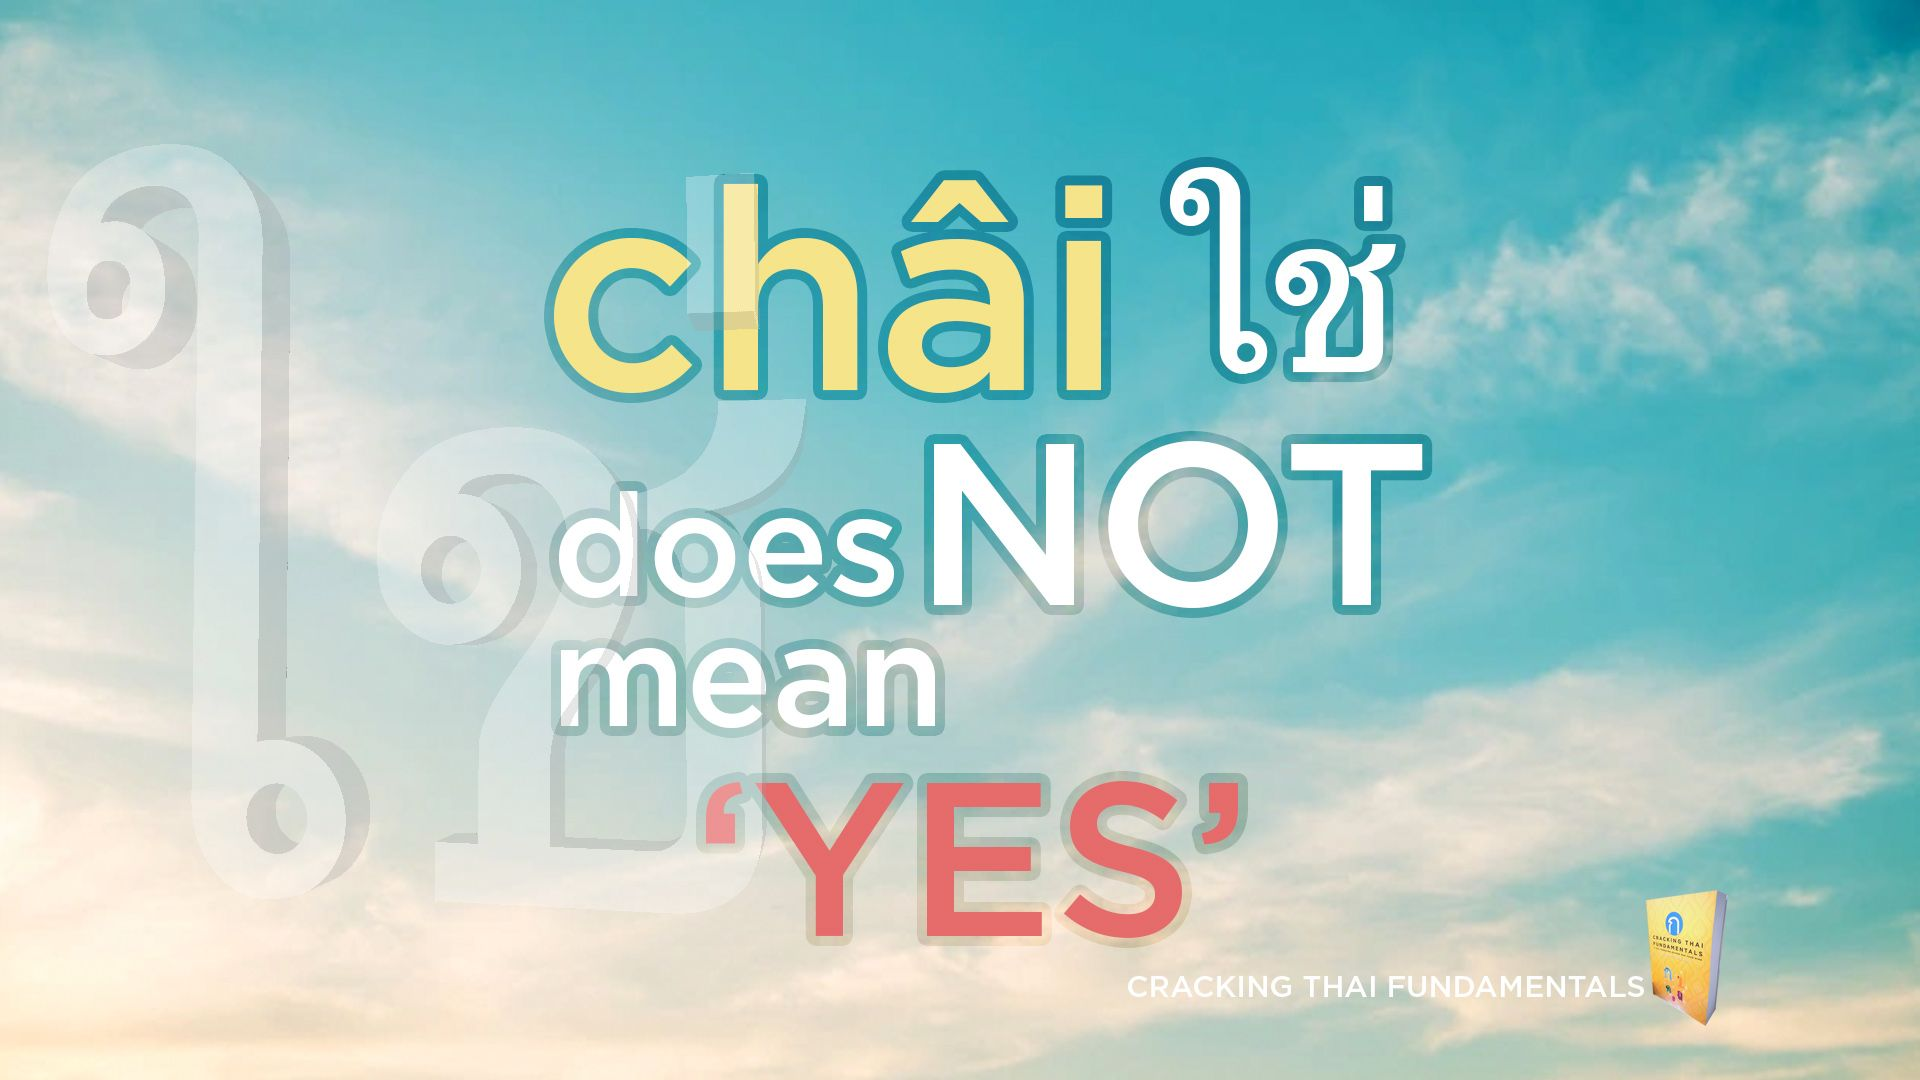 ใช่ 'châi' Does NOT Mean 'Yes' in Thai